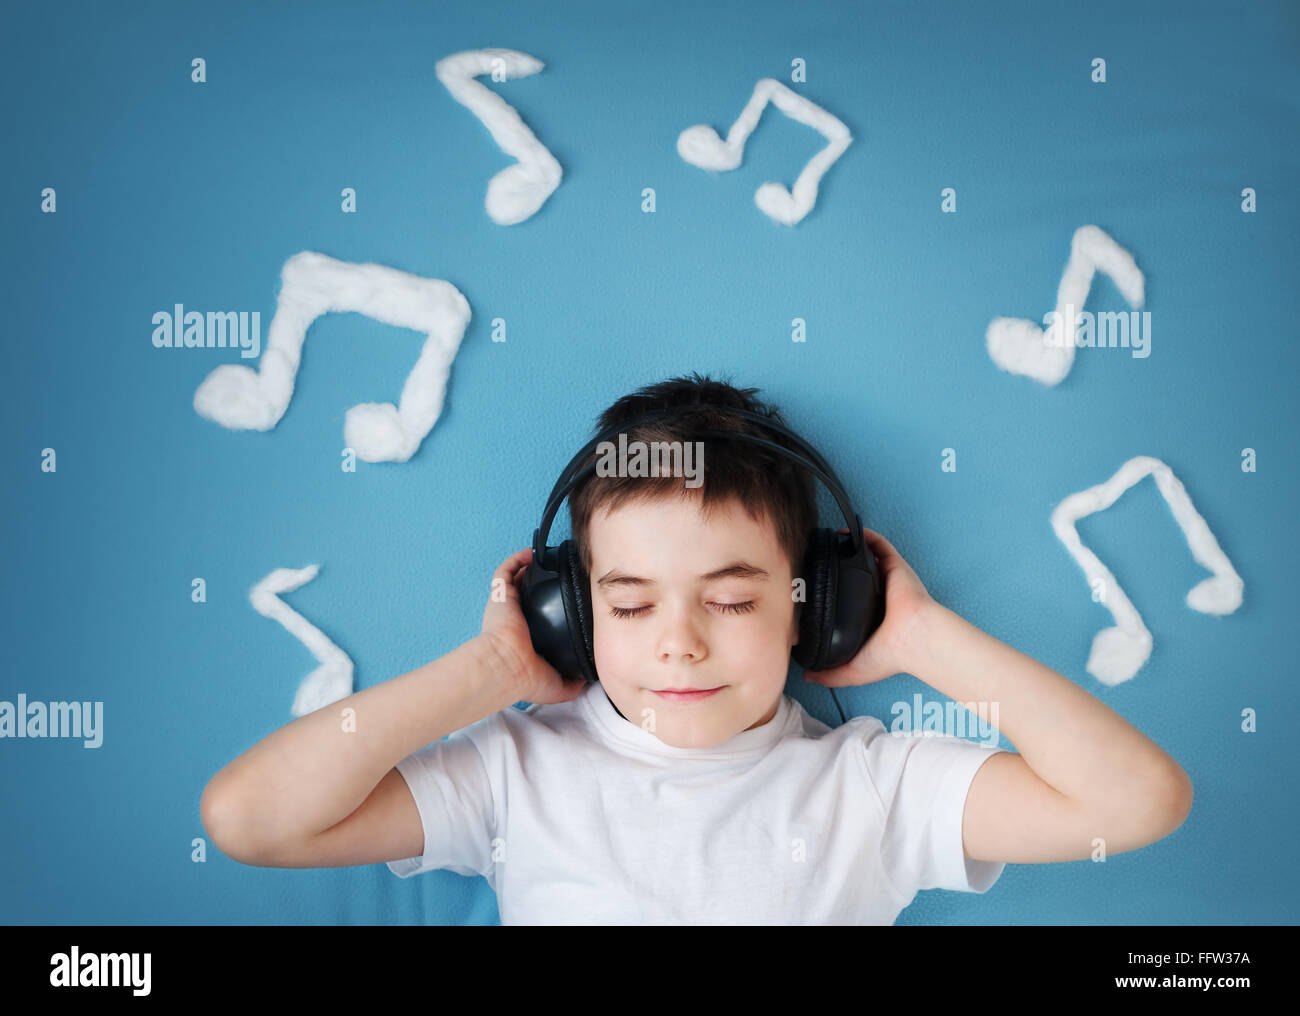 boy on blue blanket background with headphones - Stock Image